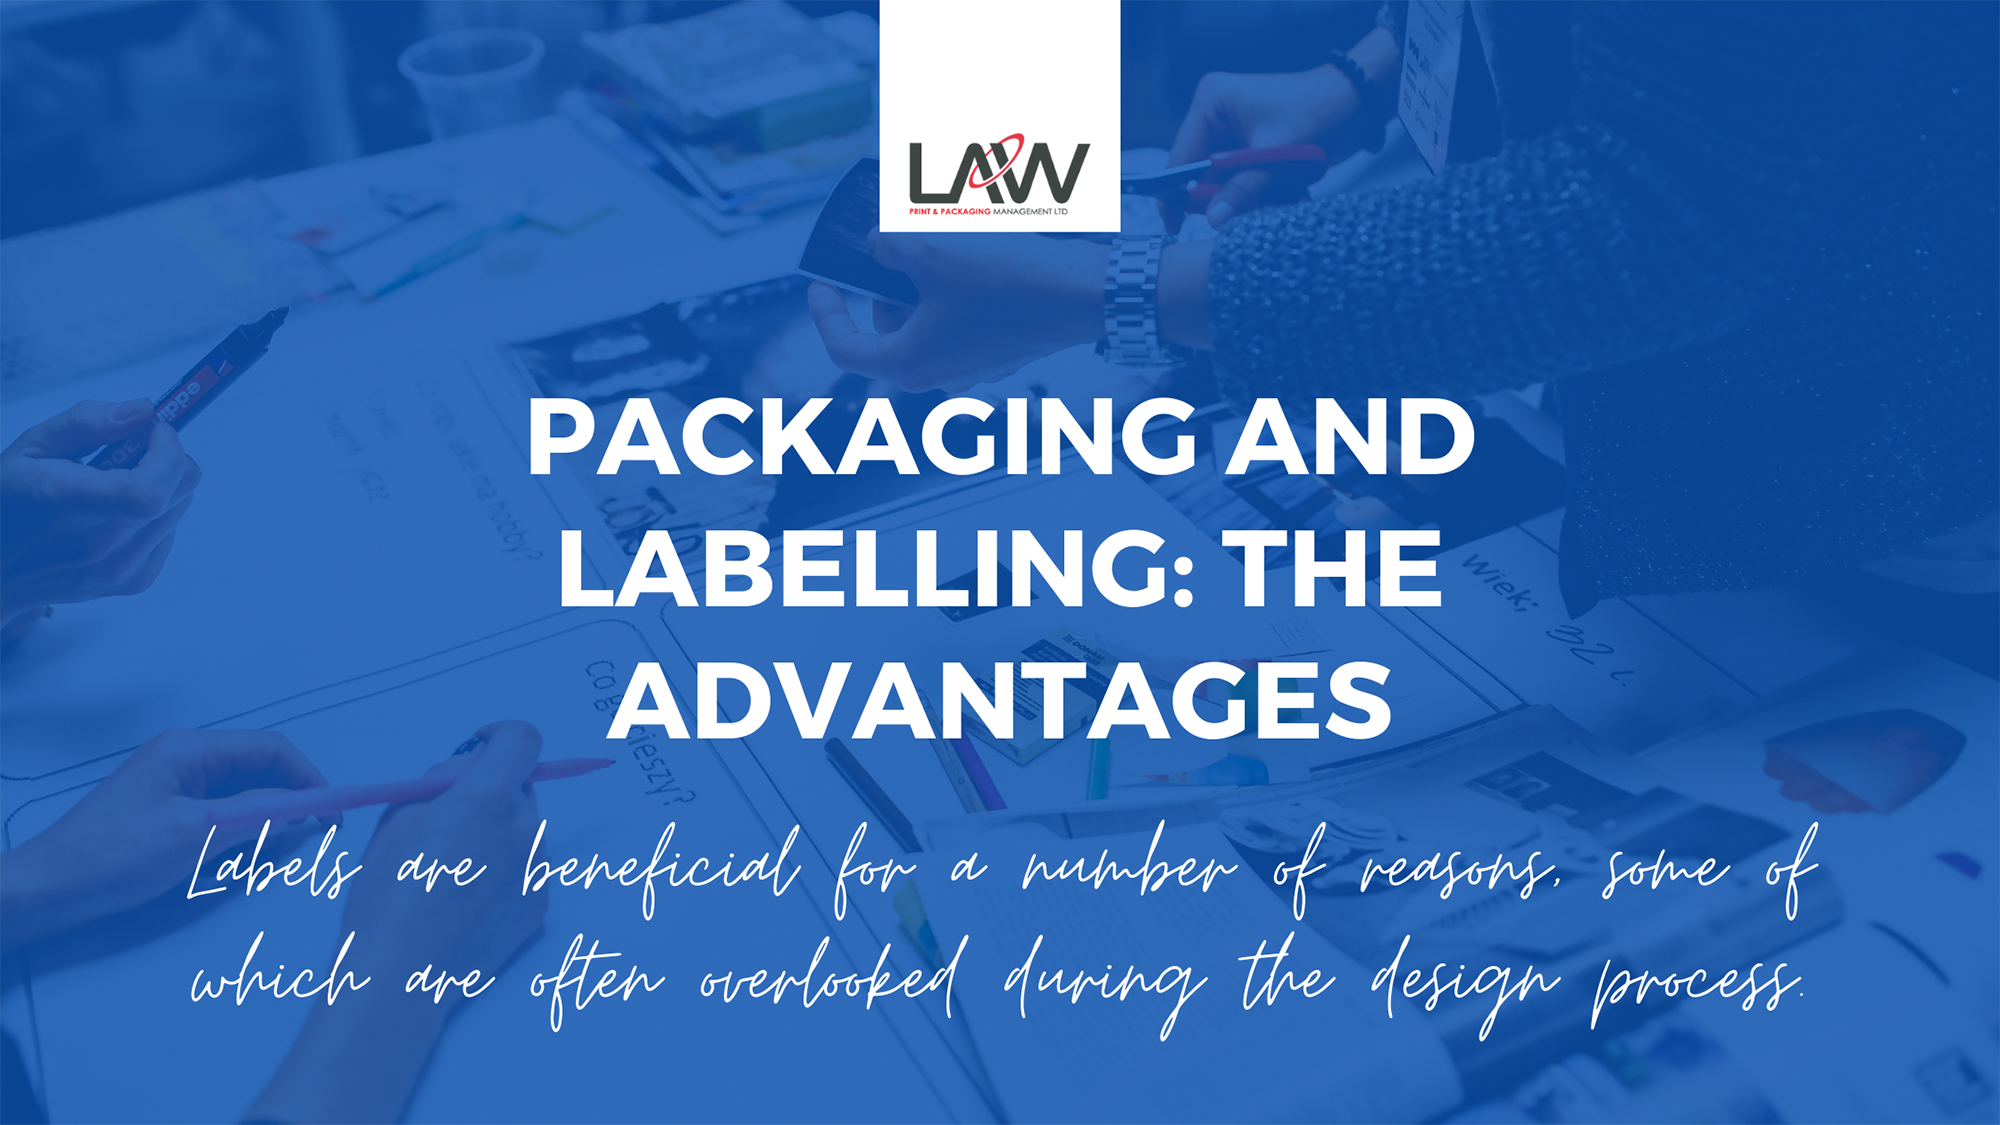 Packaging and Labelling: The Advantages